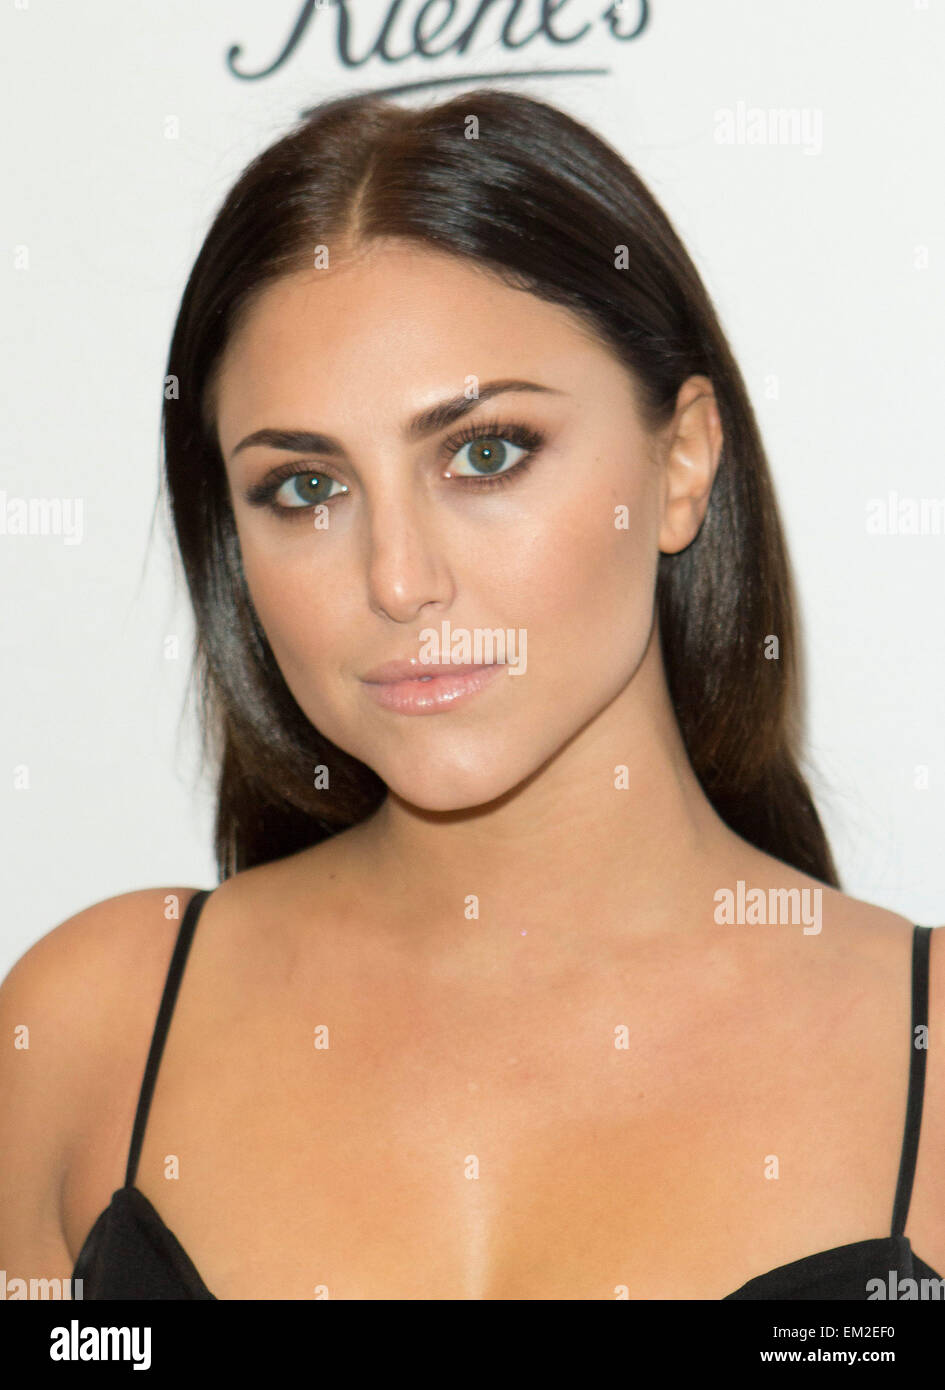 Los Angeles, California, USA. 15th Apr, 2015. Cassie Scerbo attends Kiehl's 2015 Earth Day Project with Elizabeth - Stock Image